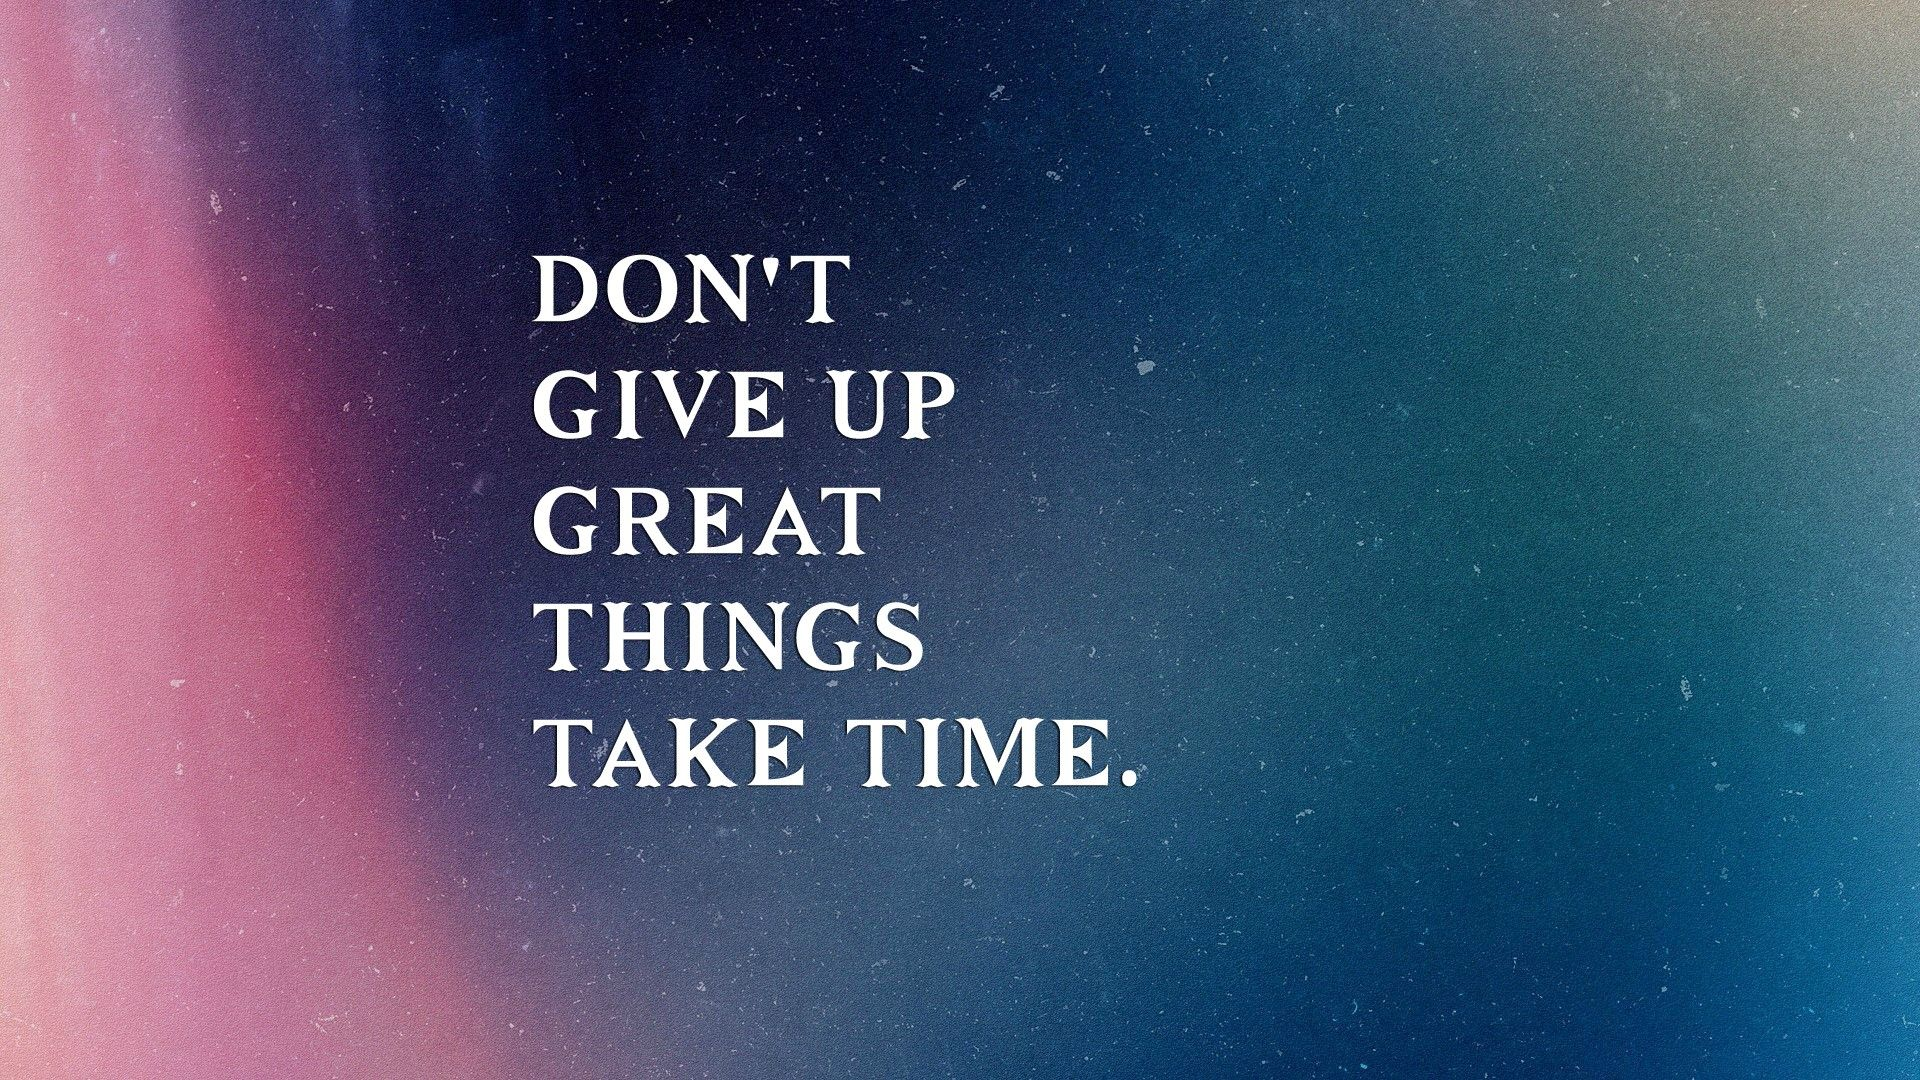 Http Www Hdnicewallpapers Com Walls Big Thoughts 20and 20quotes Dont Give Up High Quality Laptop Wallpaper Quotes Hd Wallpaper Quotes Funny Quotes Wallpaper